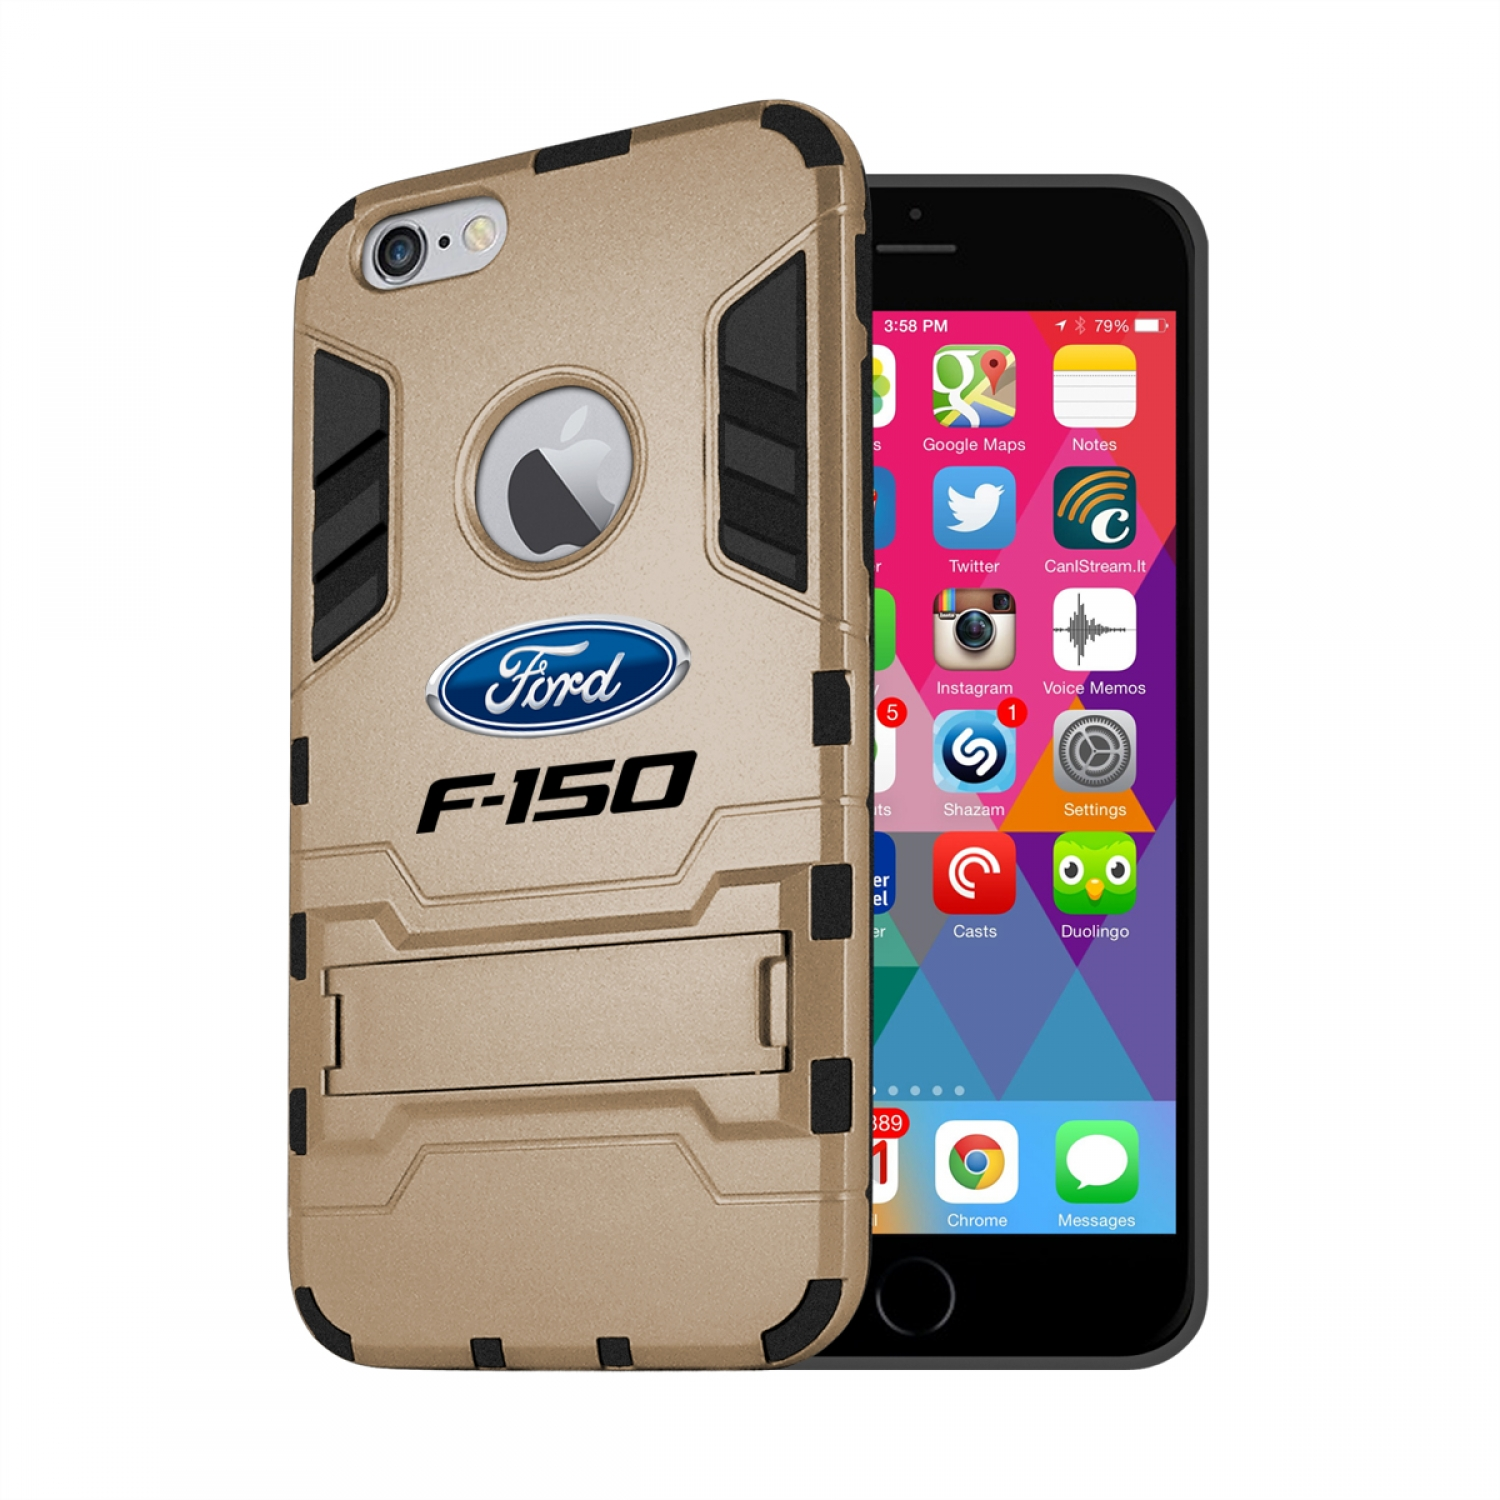 Ford F-150 iPhone 6 6s Shockproof TPU ABS Hybrid Golden Phone Case